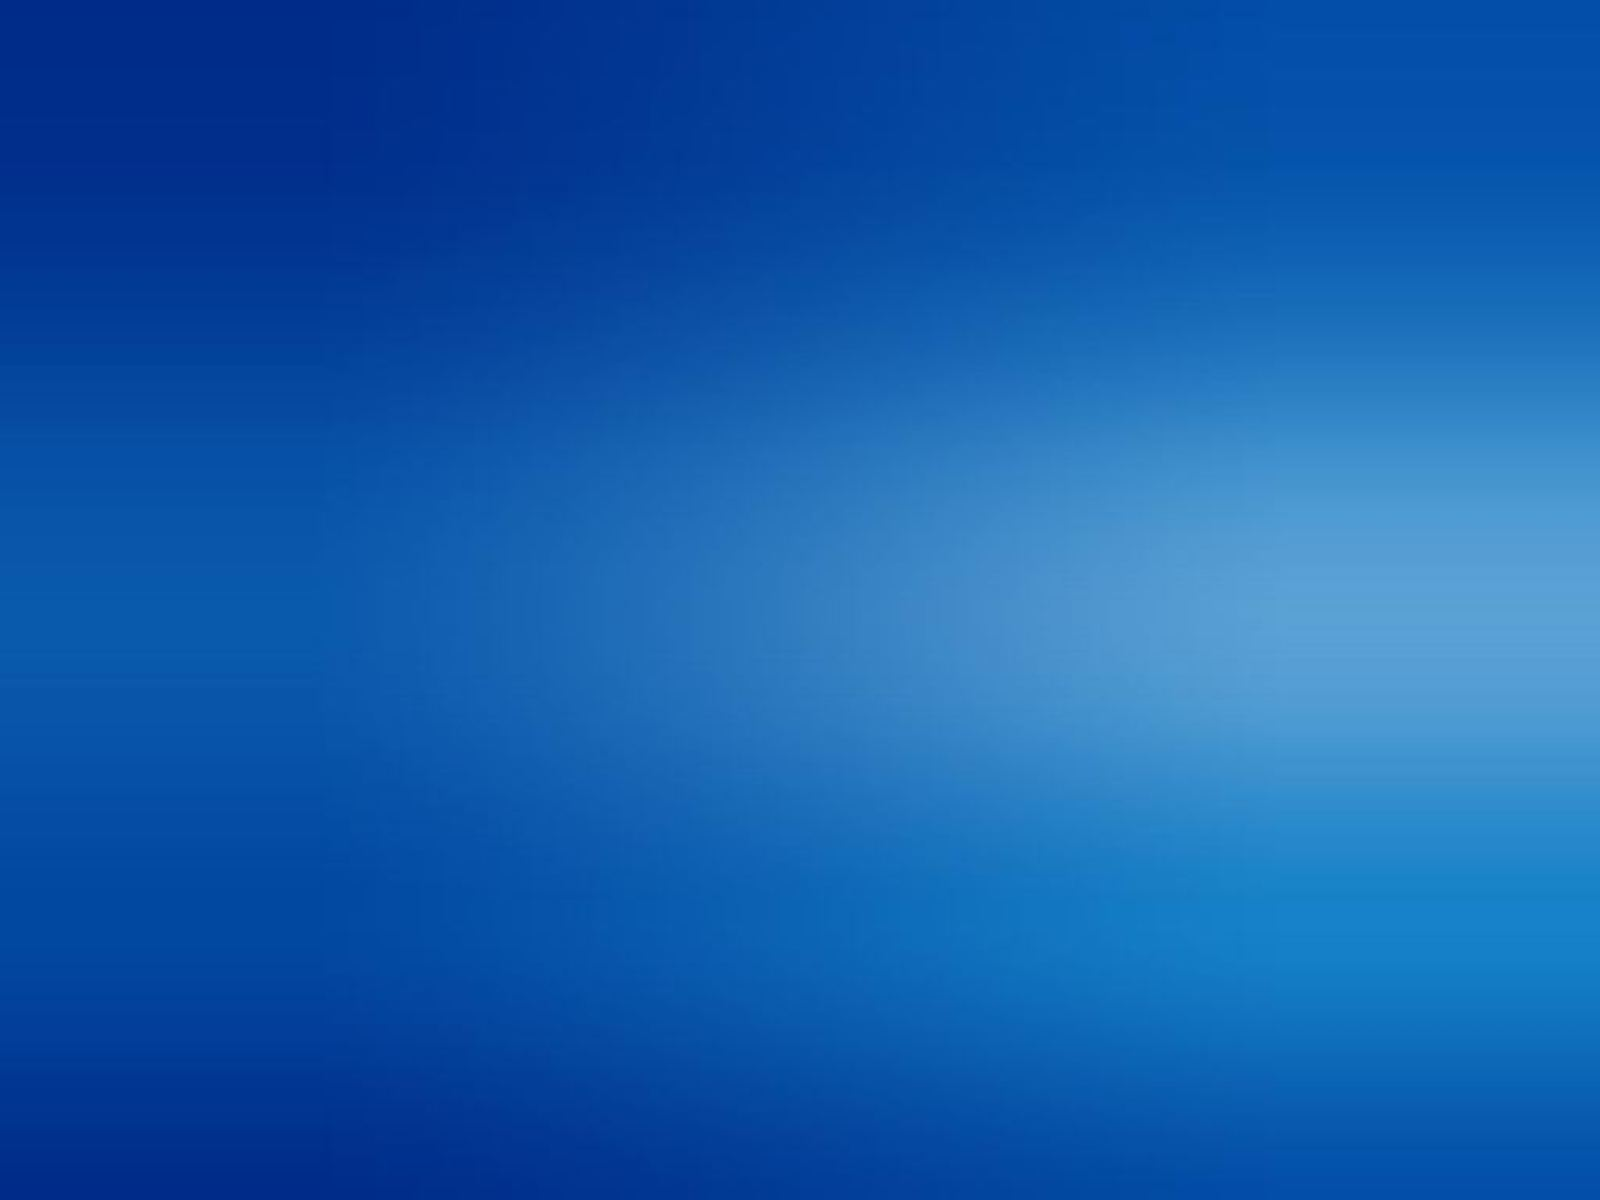 Plain Blue HD Wallpaper